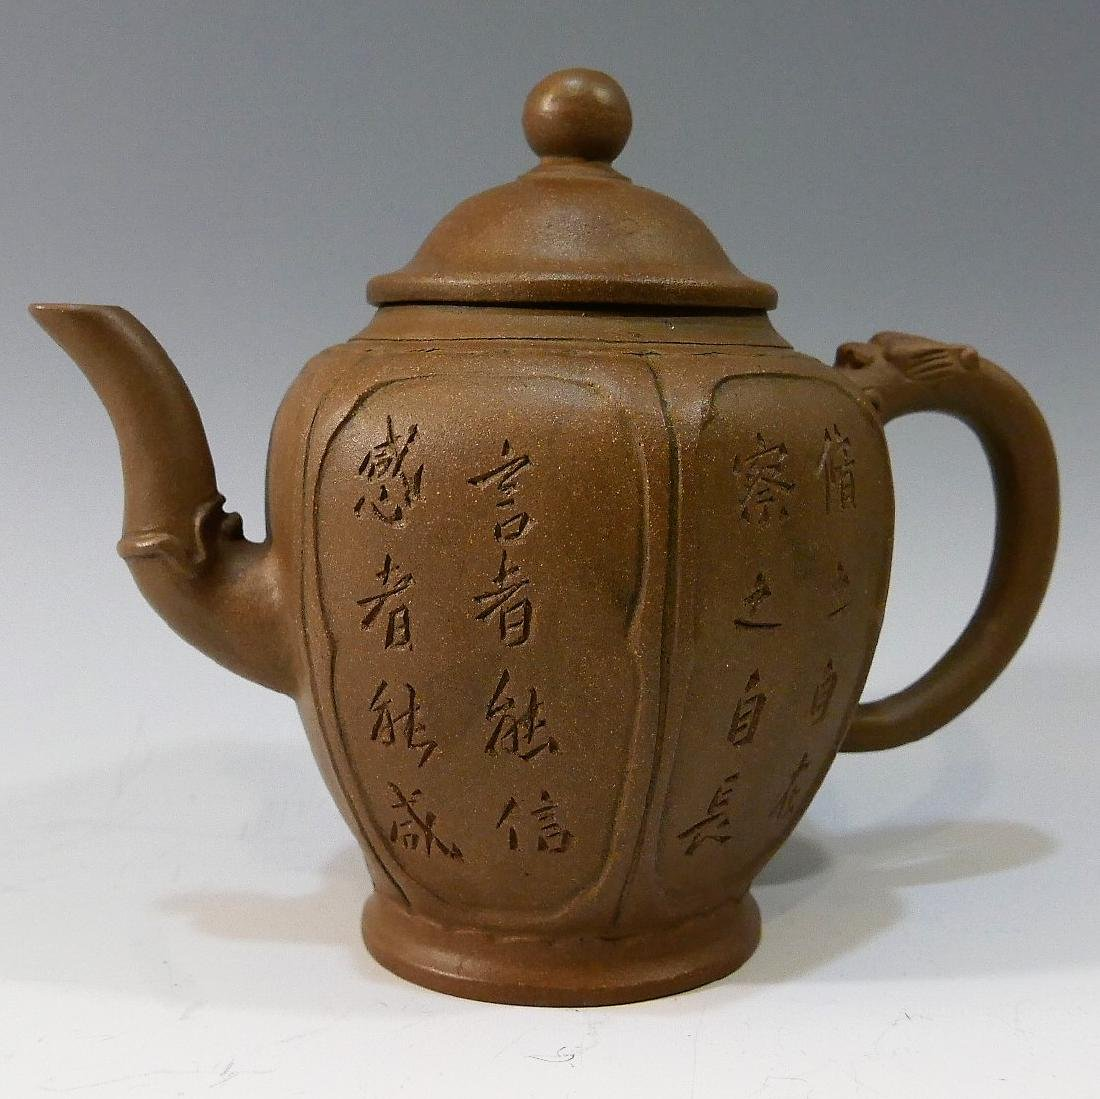 CHINESE ANTIQUE YIXING ZISHA TEAPOT - WANG DONGSHI MARK